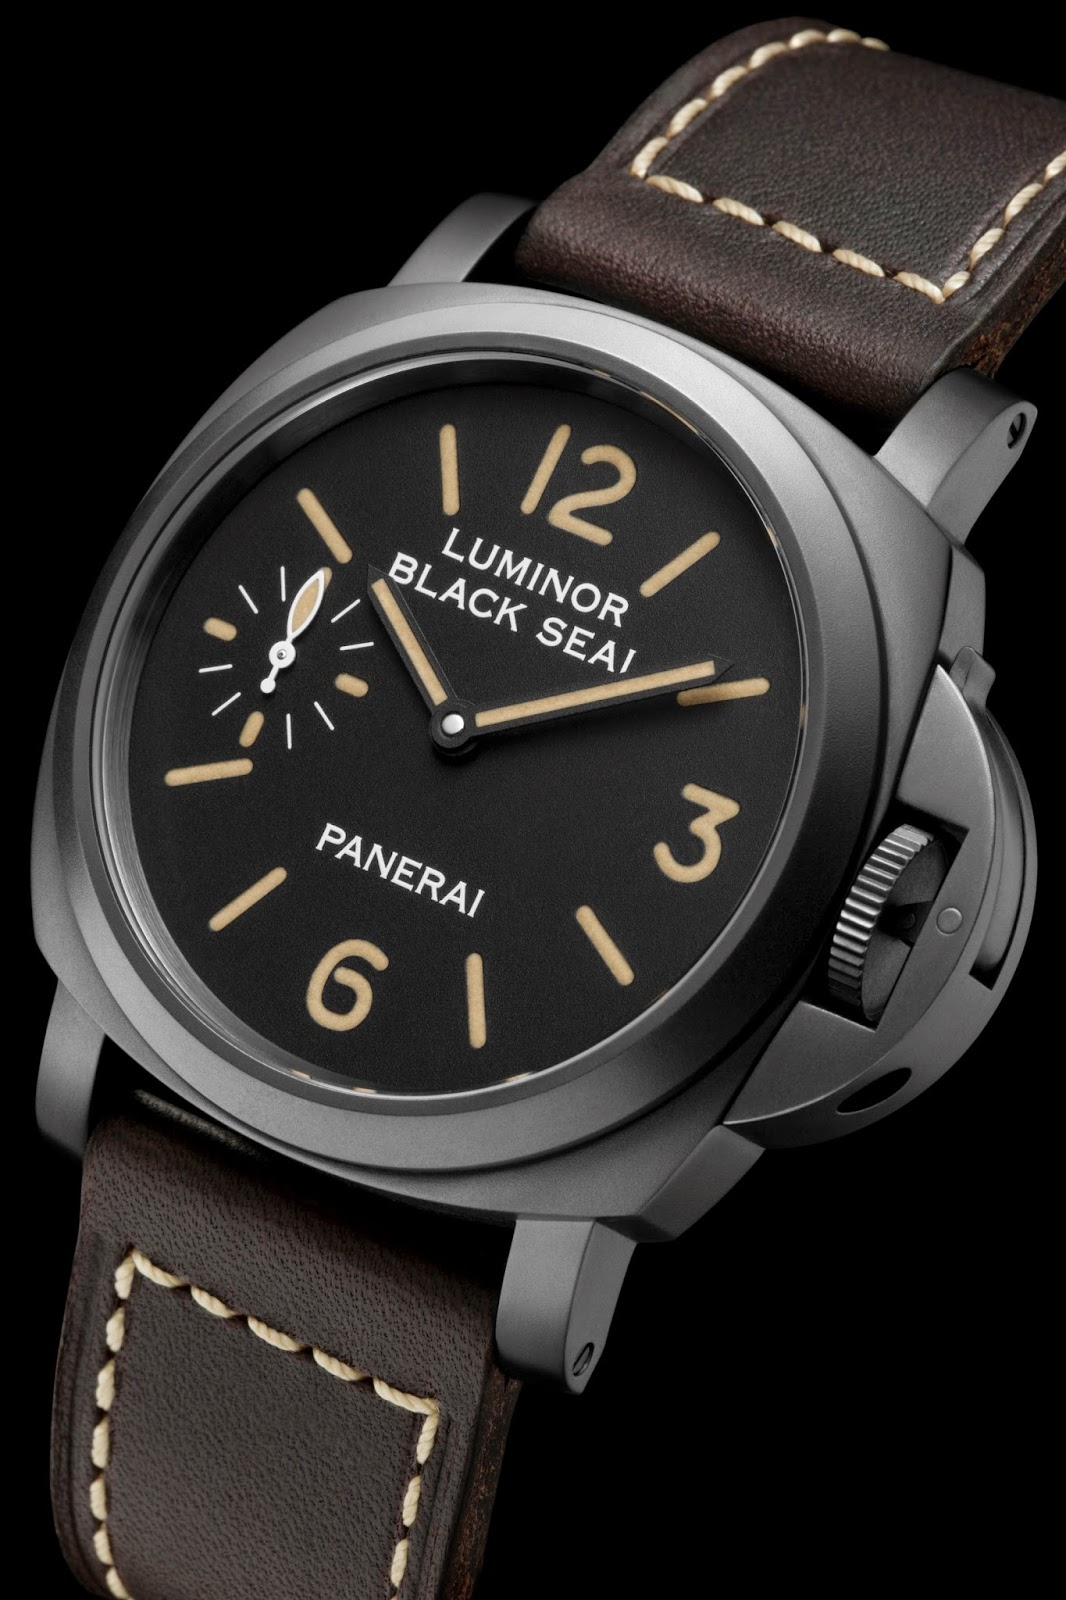 Panerai Special Edition Set - Luminor Black Seal and Luminor Daylight (PAM00785)